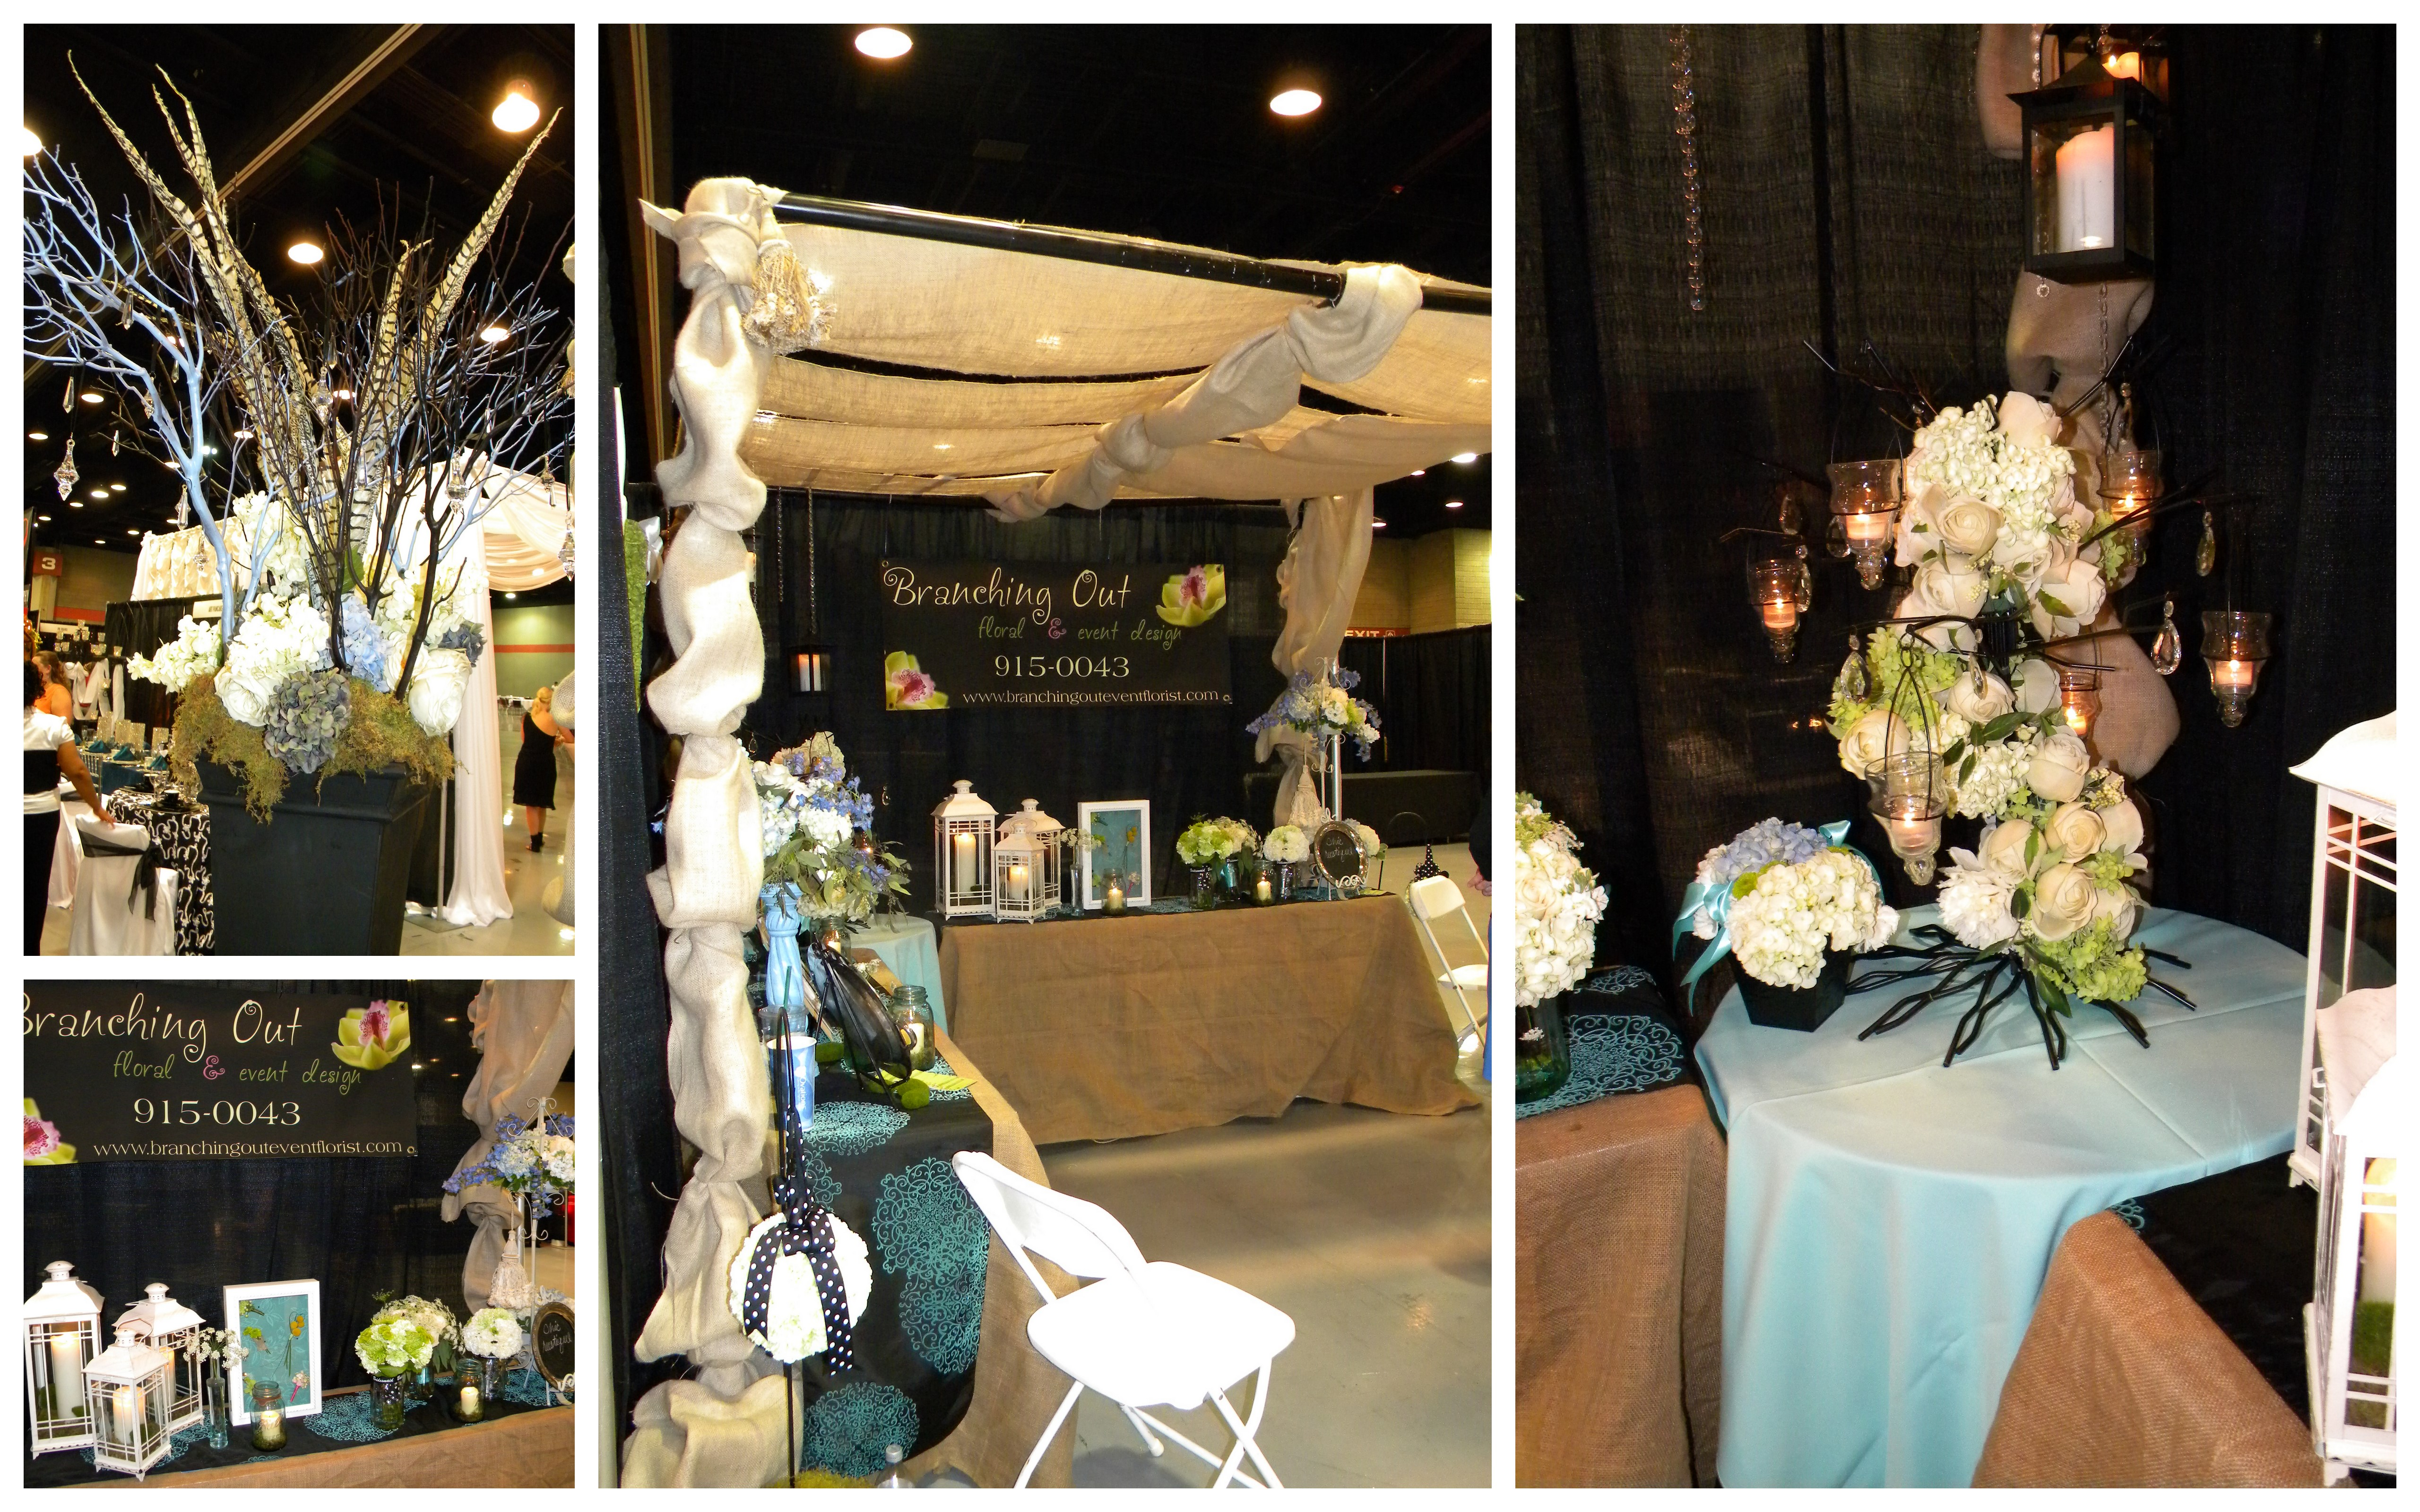 weddings bridal event booth rustic burlap nashville recap amazing feel decor branching rented vicki canopy incorporated had most